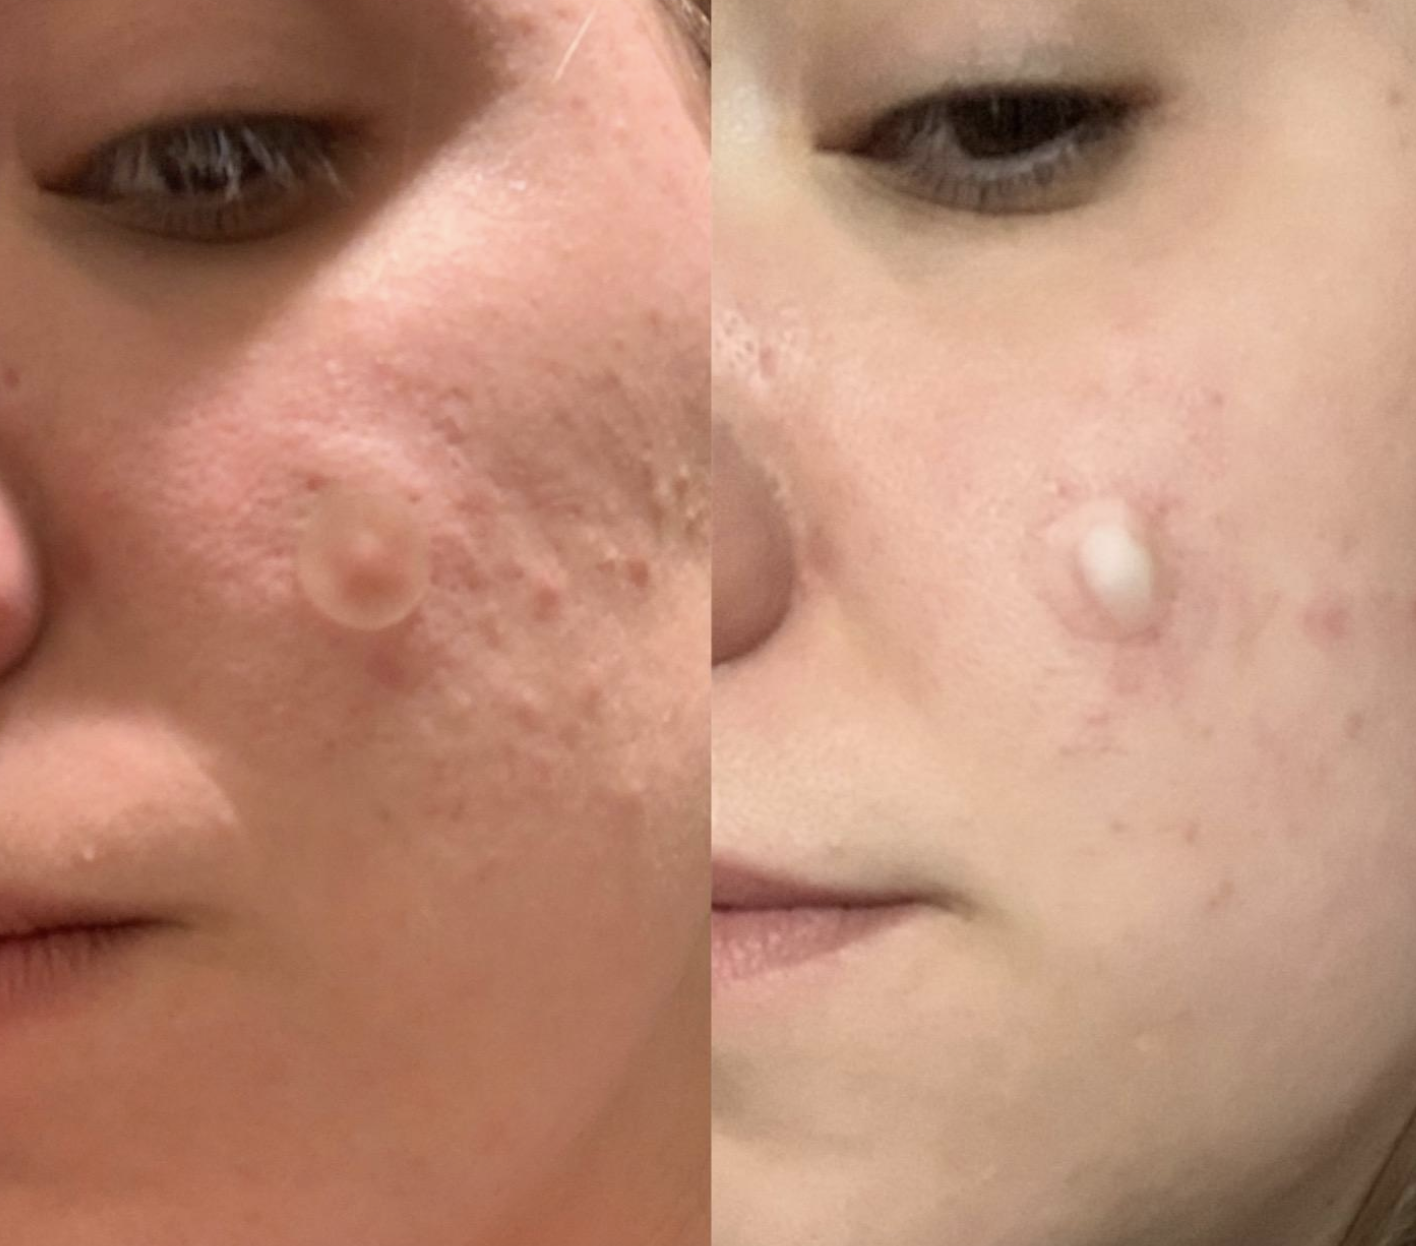 On the left side, a reviewer wears a Mighty Patch over a zit. On the right, the same reviewer's Mighty Patch has clearly absorbed the pus from the zit